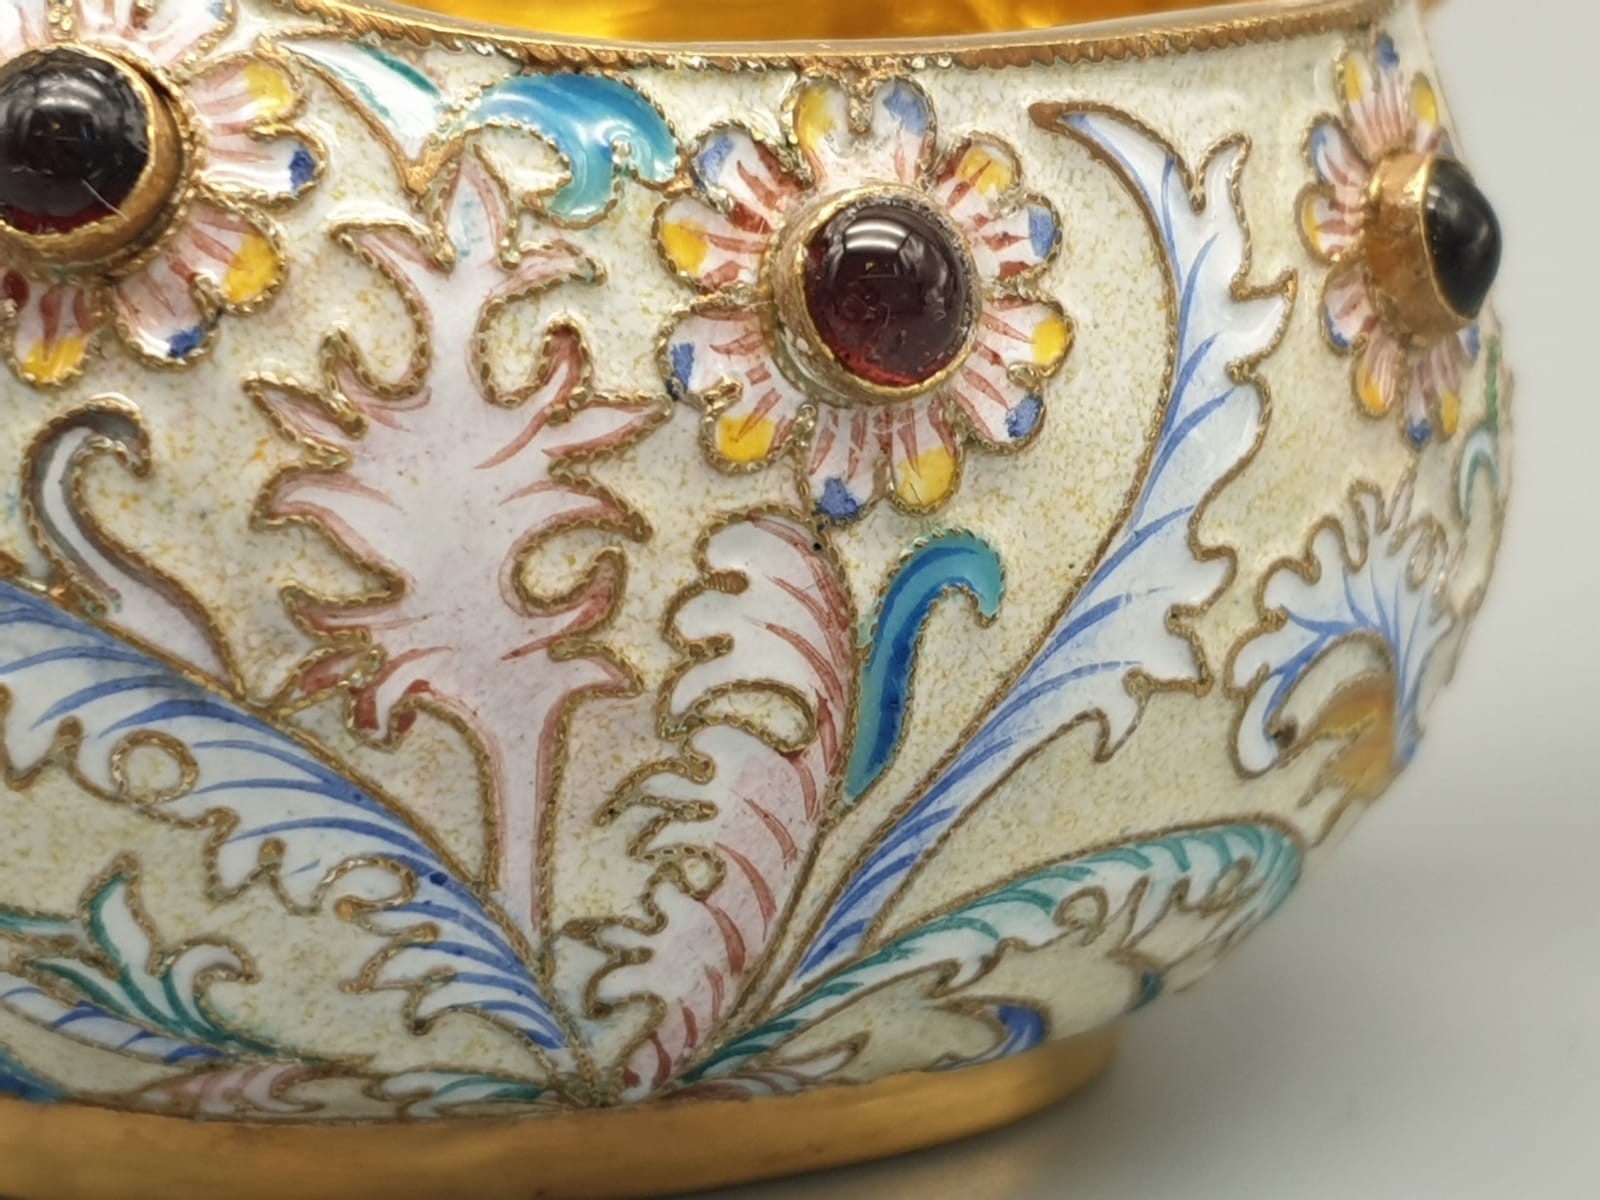 Pair of Russian 20th century silver enamel gemset kavosch bowl in the form of birds, an exquisite - Image 19 of 29